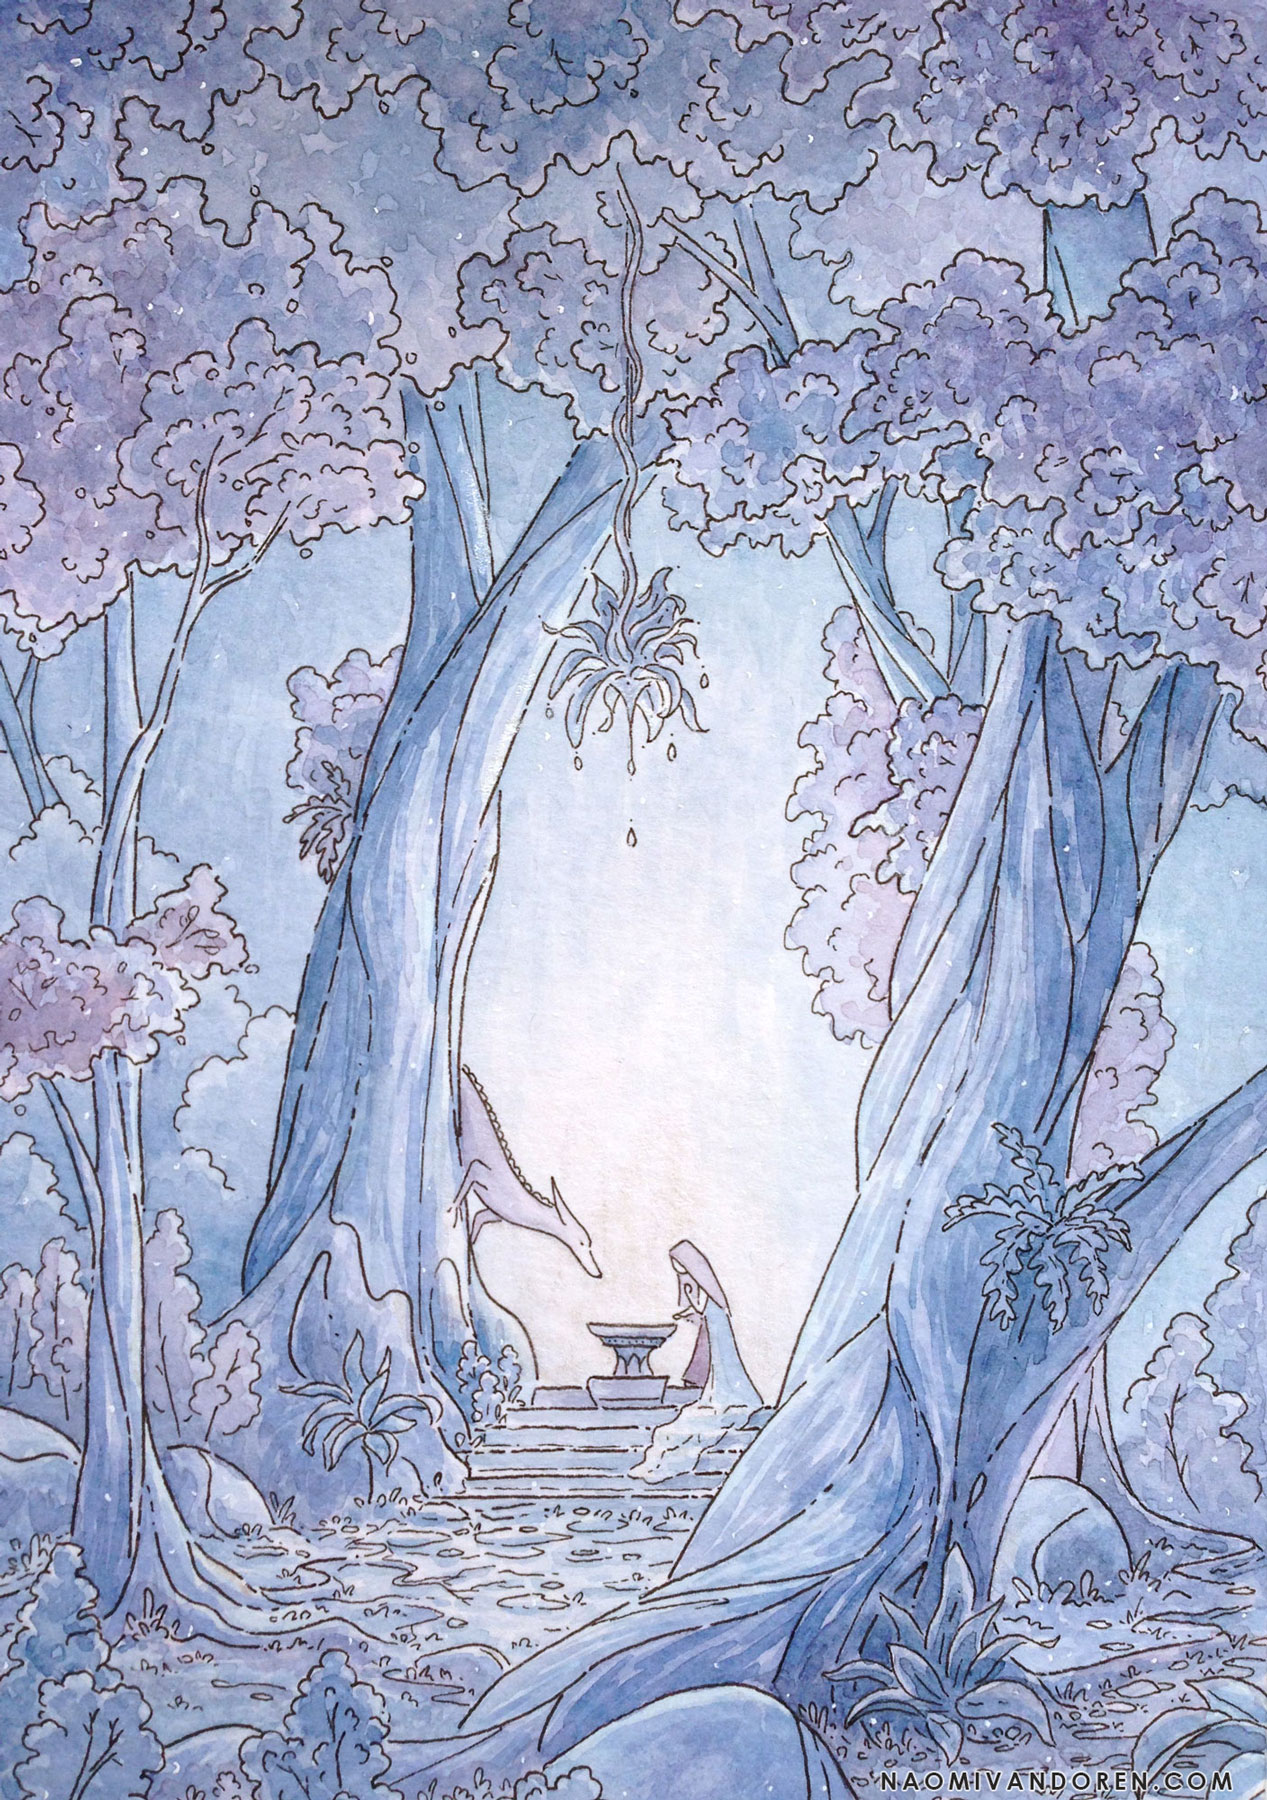 A whimsical watercolor painting by Naomi VanDoren of a woman and fox dragon beneath trees.